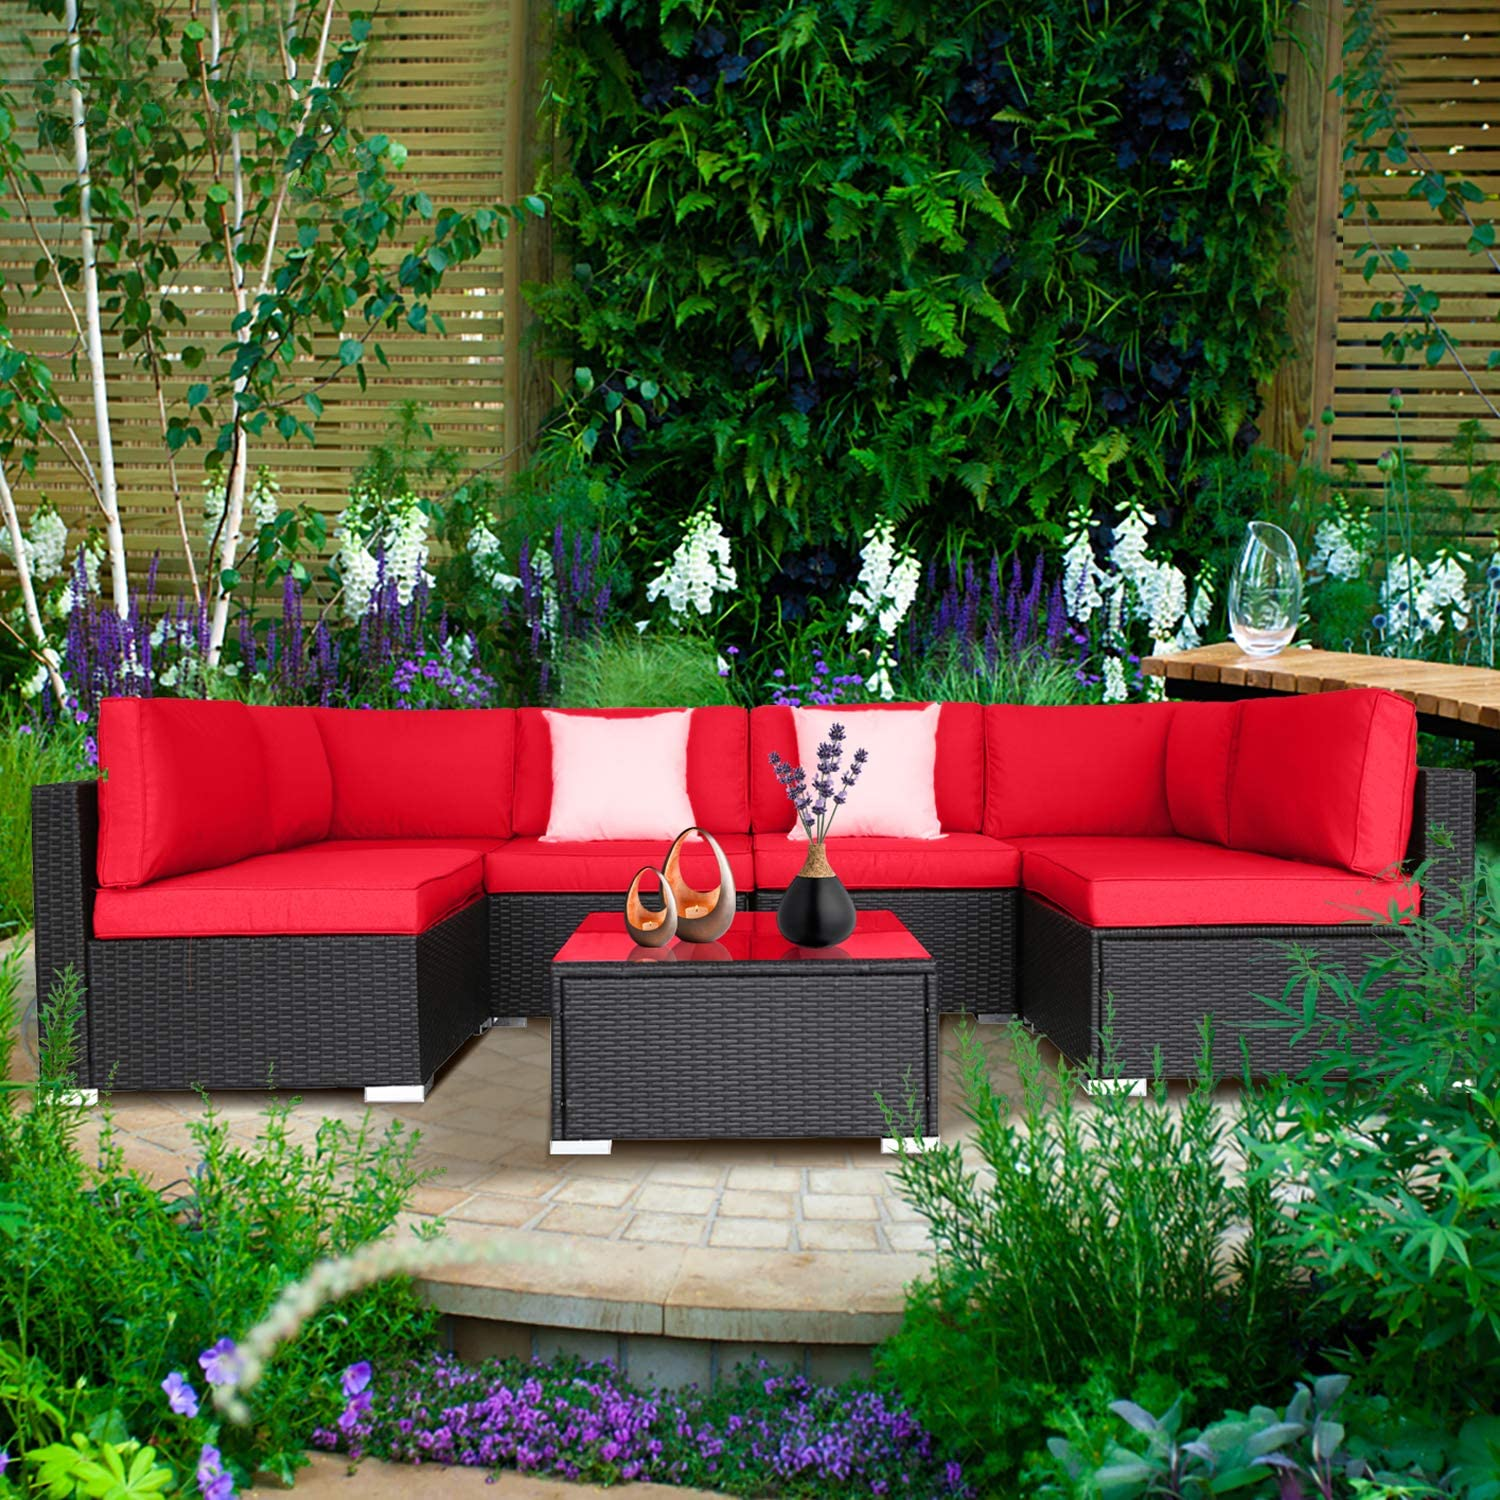 Excited Work 7 PCs Outdoor Patio Furniture Sets PE Rattan Wicker Sofa Sectional Furniture Set with 2 Pillows and Tea Table (Red)